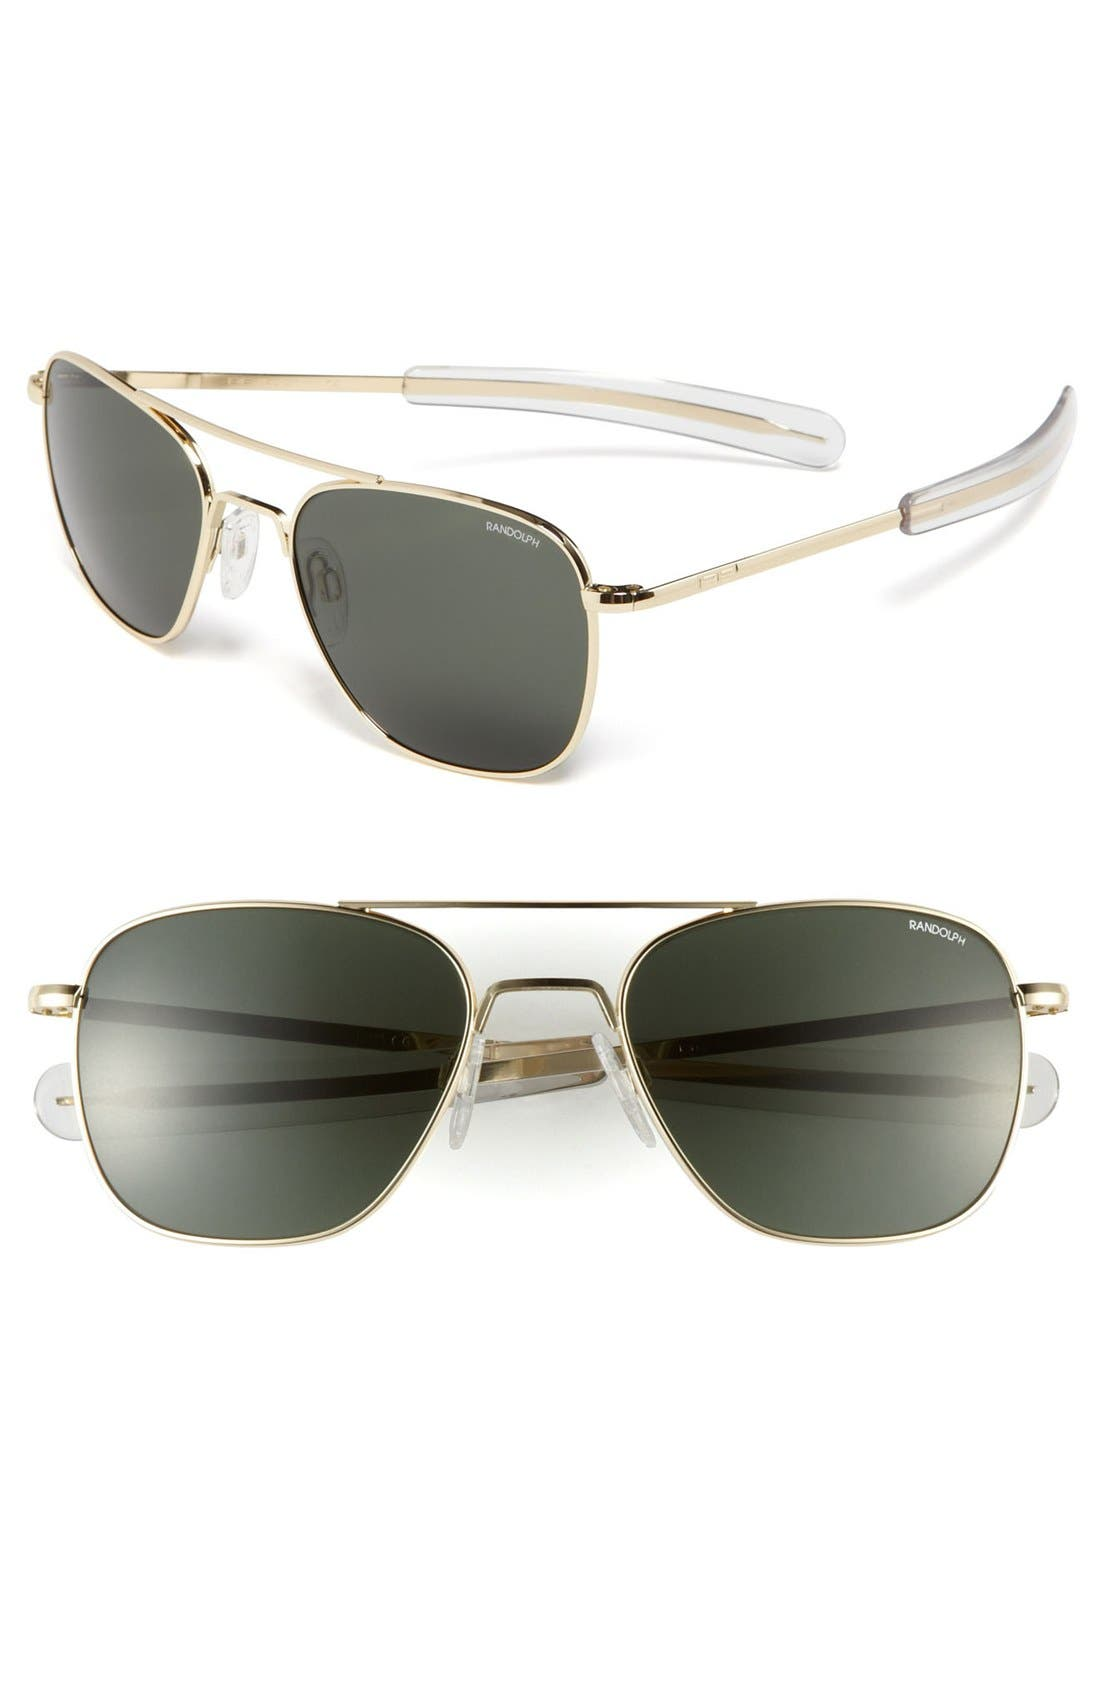 Randolph Engineering 55mm Aviator Sunglasses